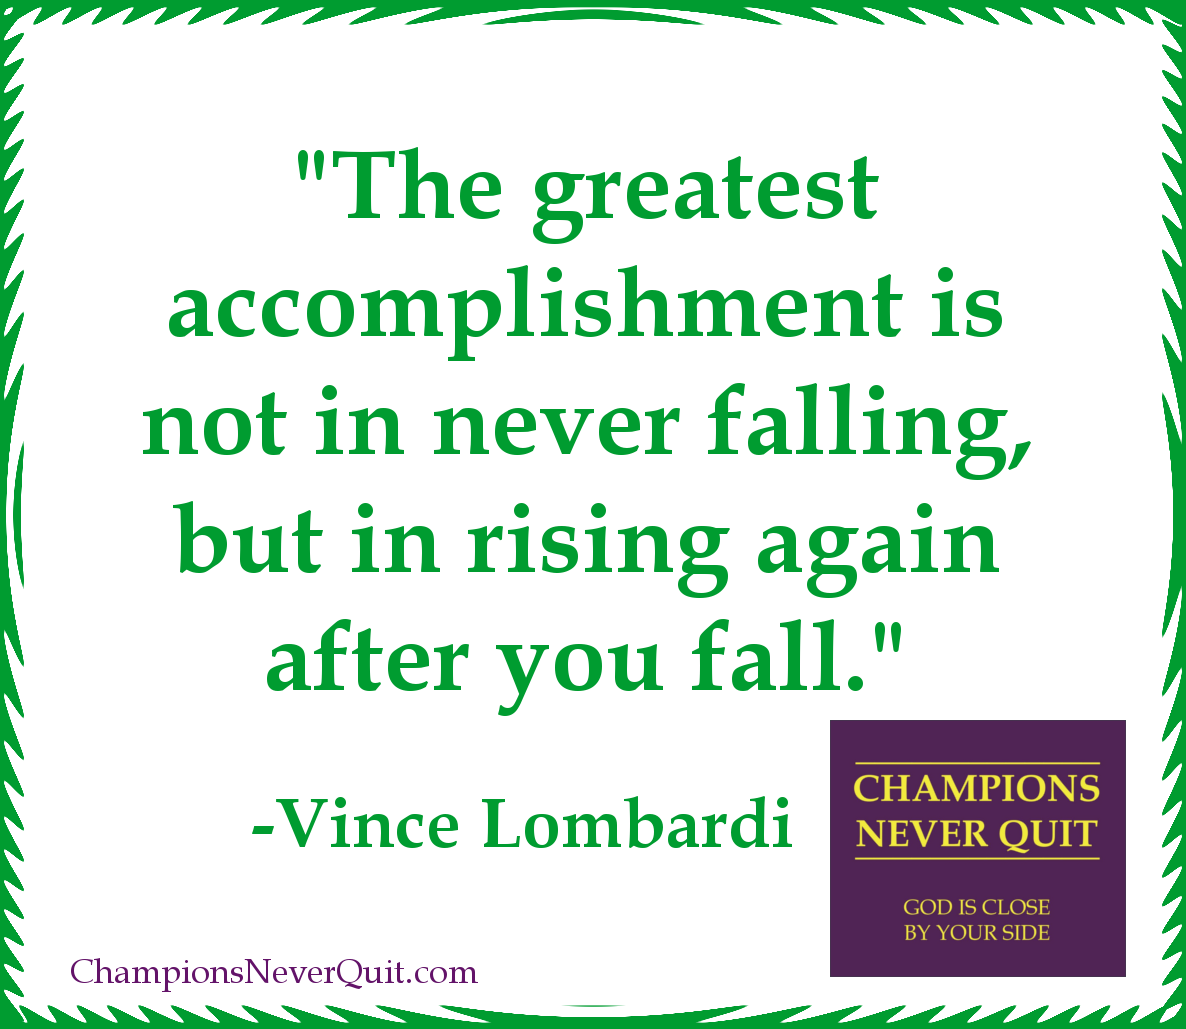 champions never quit photos memes the greatest accomplishment vince lombardi